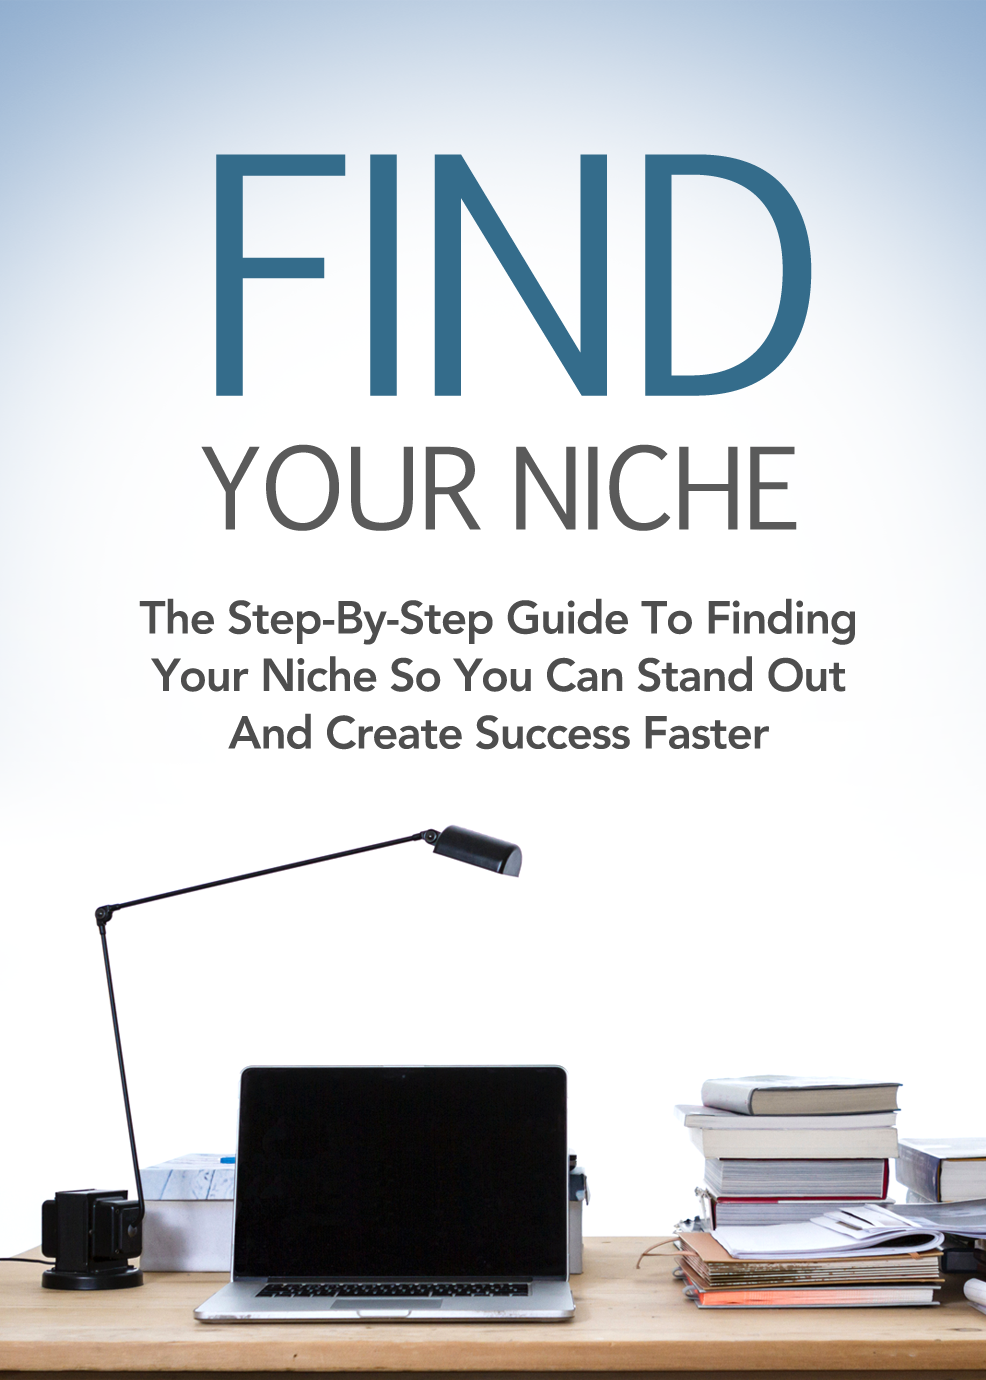 Find Your Niche (The Step-By-Step Guide To Finding Your Niche So You Can Stand Out And Create Success Faster) Ebook's Ebook Image